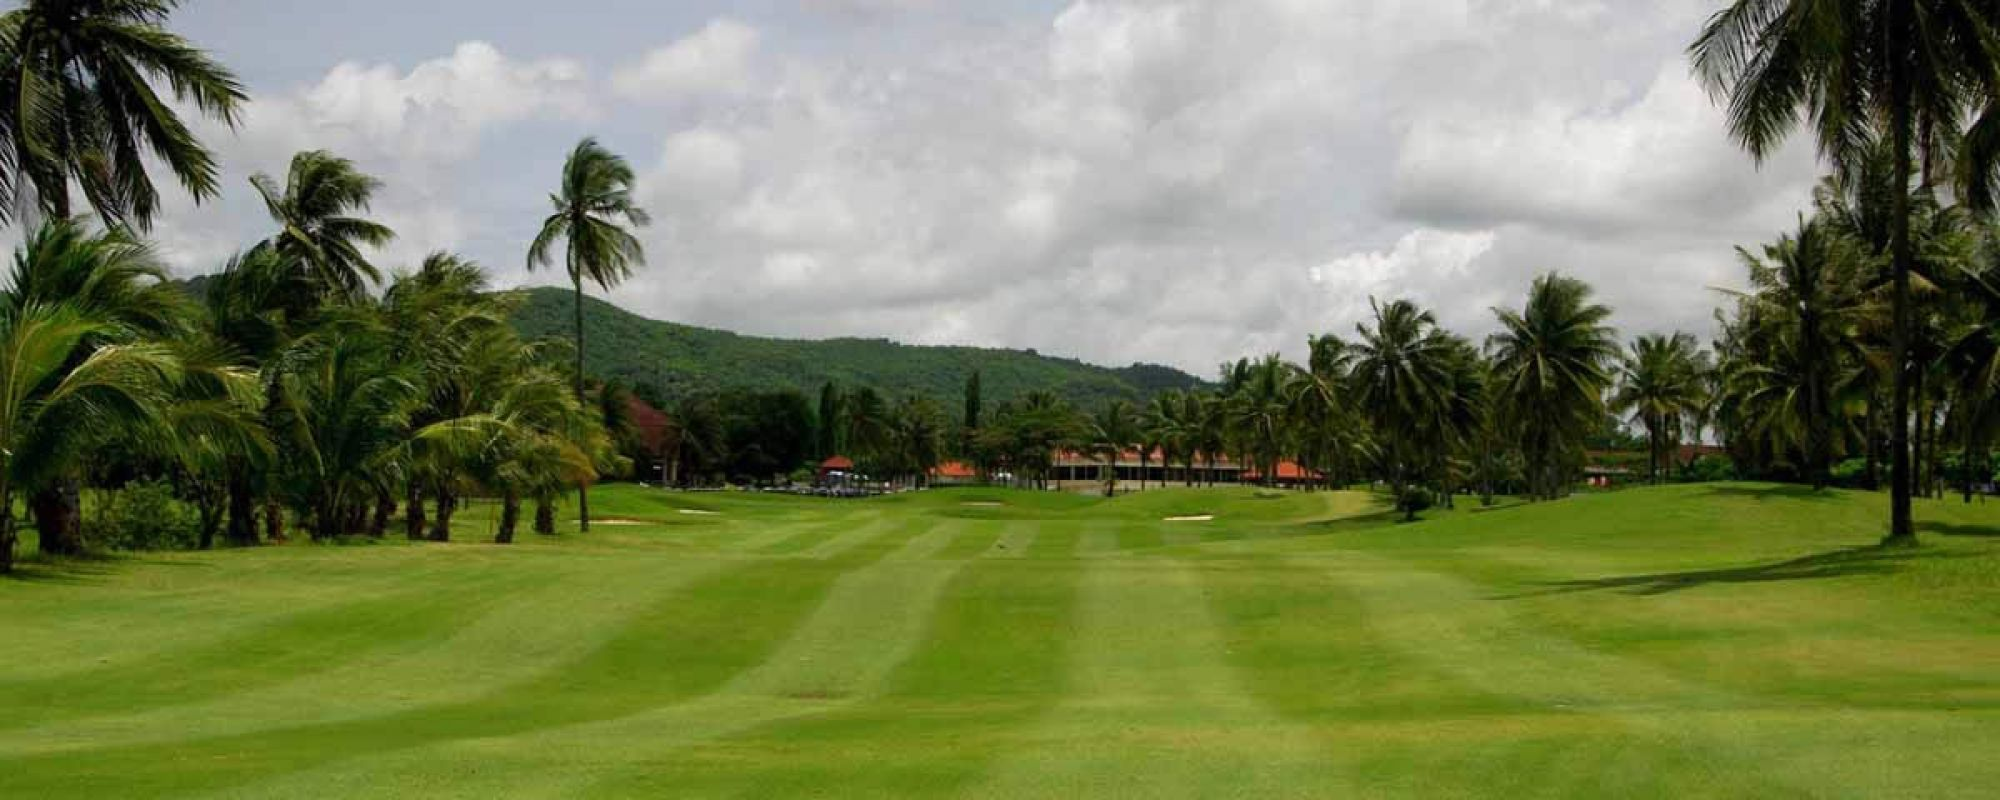 View Eastern Star Country Club's lovely golf course situated in brilliant Pattaya.